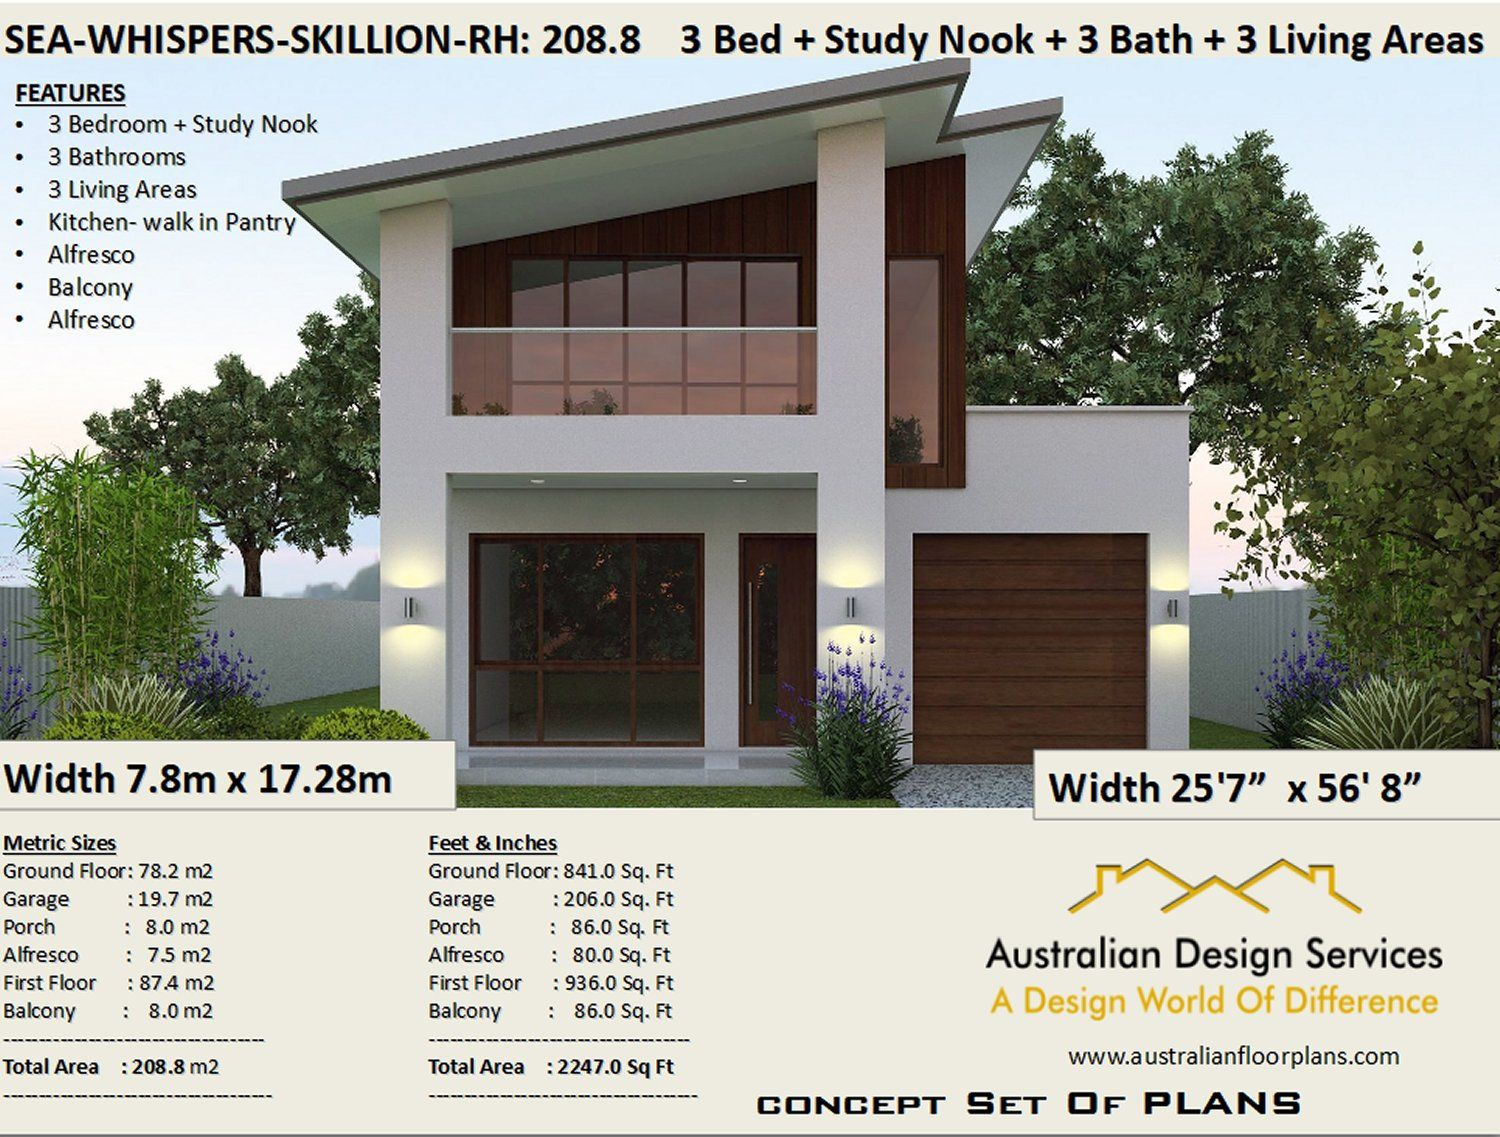 Narrow Skillion Roof House Plans Rh 208 M2 2247 Sq Feet Etsy 2 Storey House Design House Plans 2 Storey Two Storey House Plans